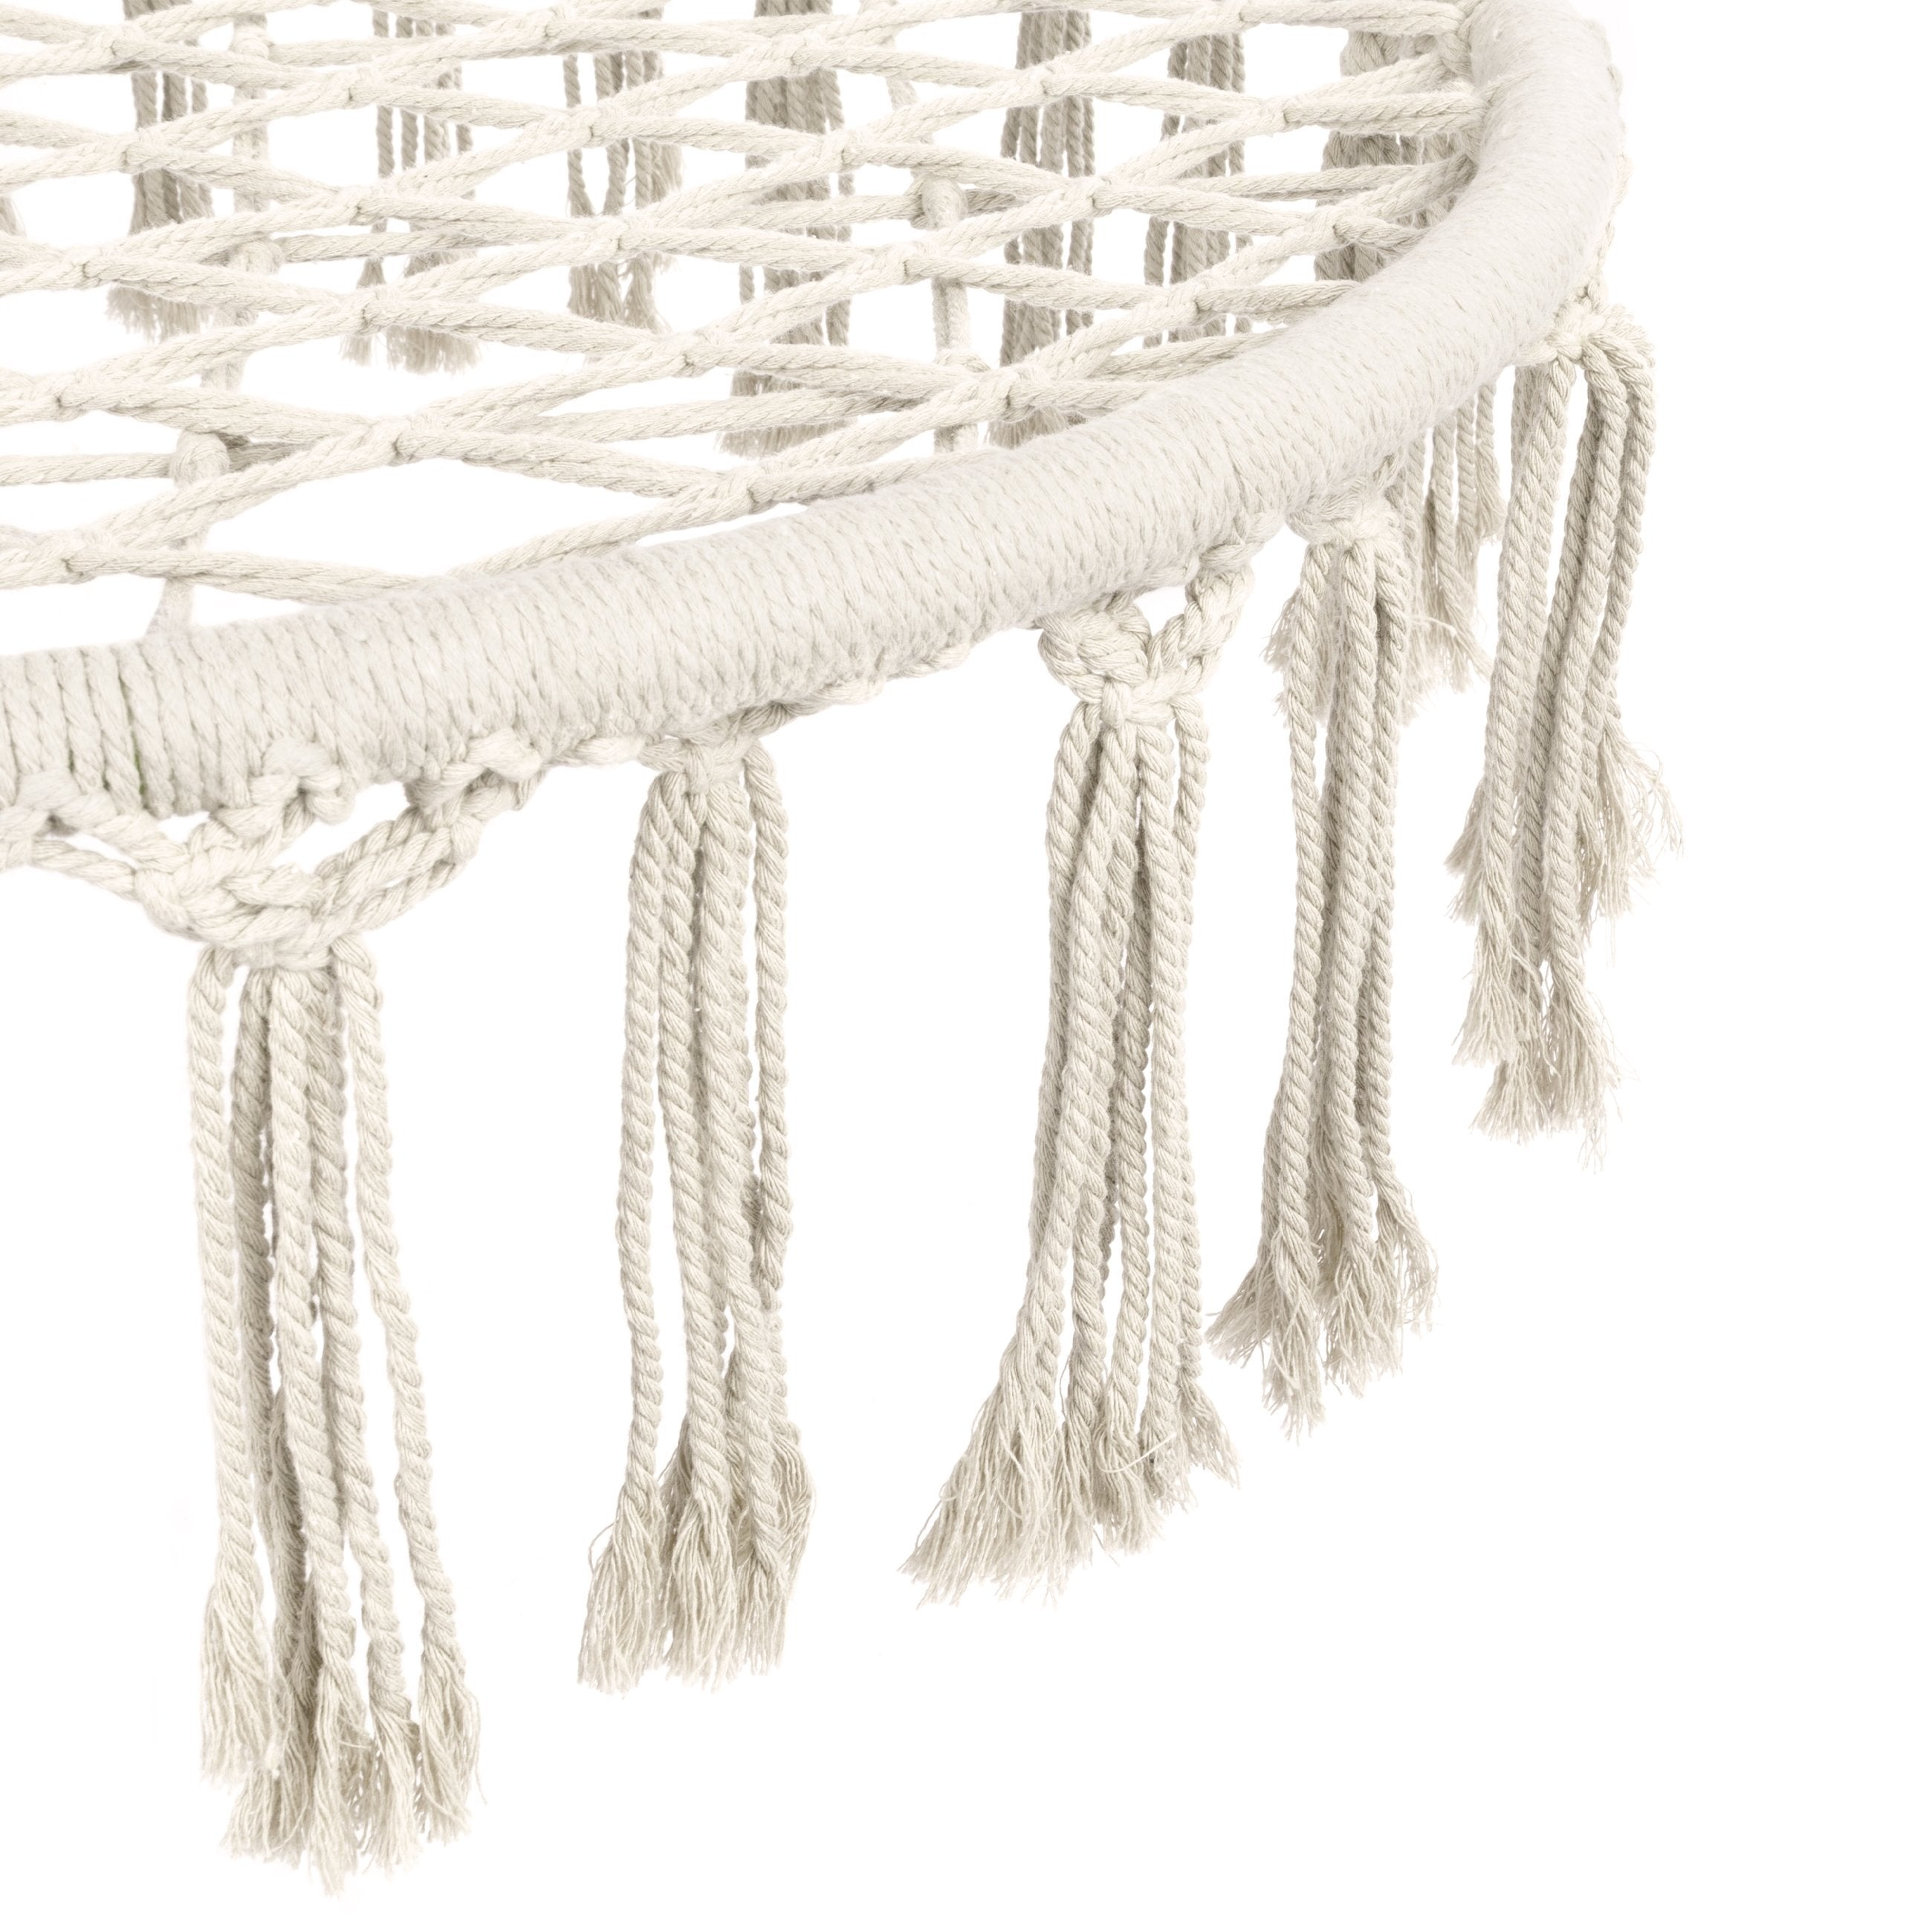 Handwoven Cotton Macrame Hammock Hanging Chair Swing w/ Fringe Tassels